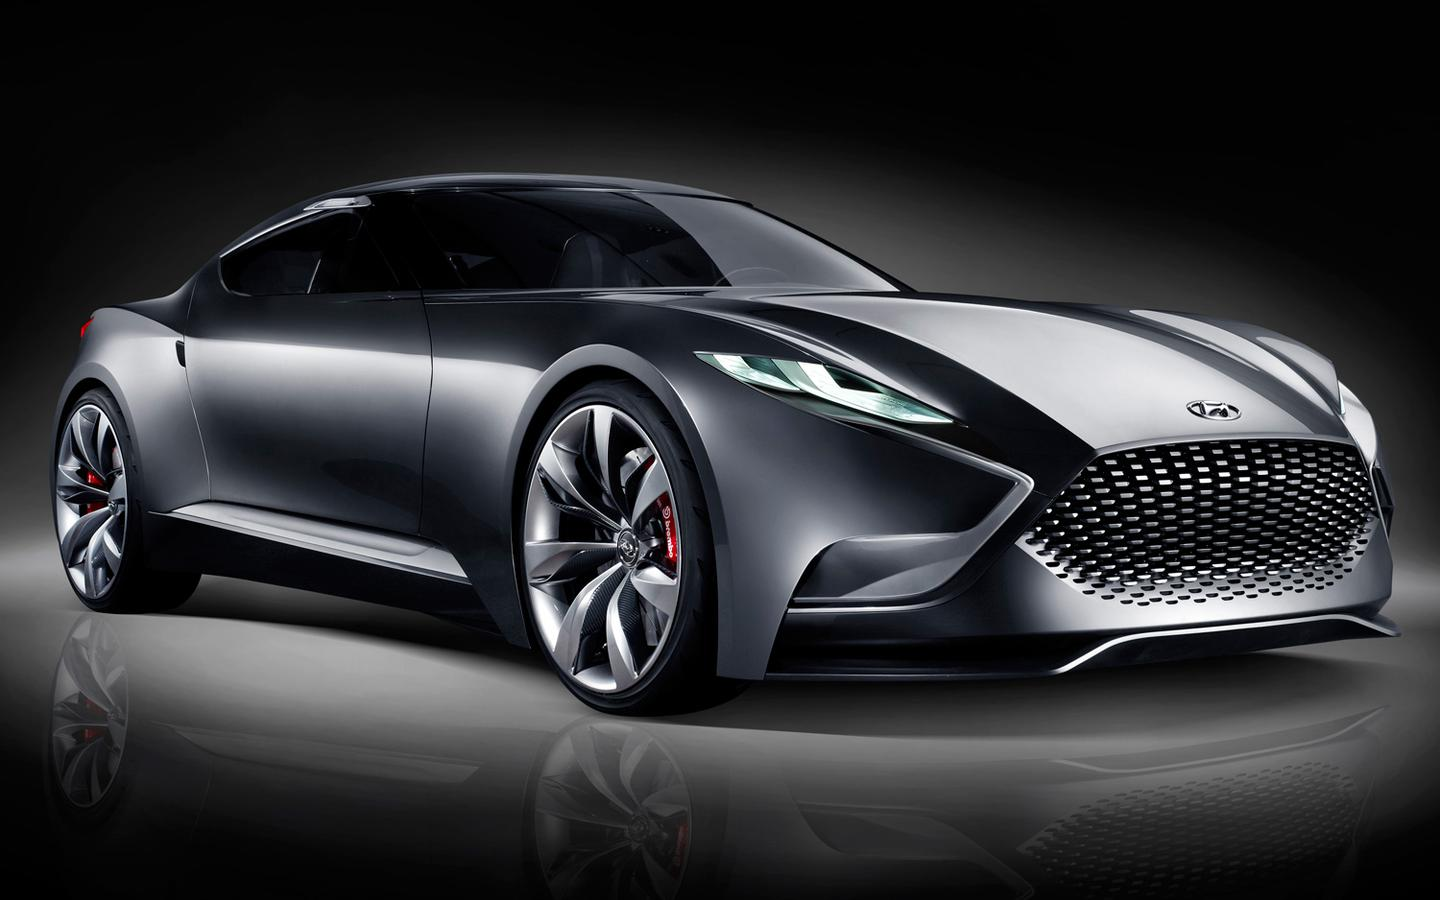 Aston Martin-like grille treatment, 'Vette rear haunchings, and a dab of Miura concept and 370Z elements influence the HND-9's fluidic body treatment